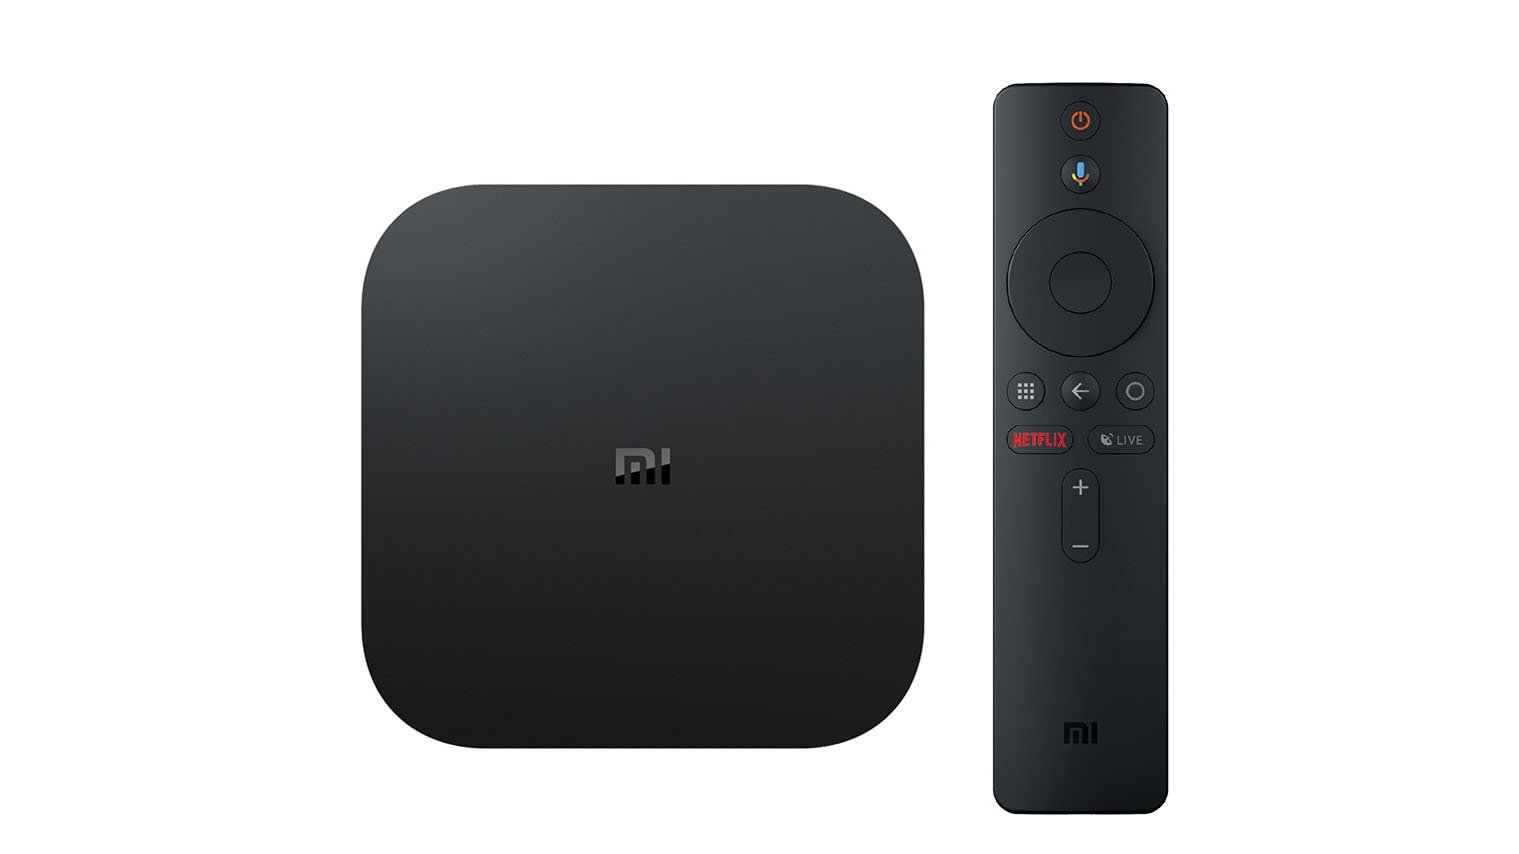 Best Android TV box 2019: The best Android TV devices for Plex, Kodi